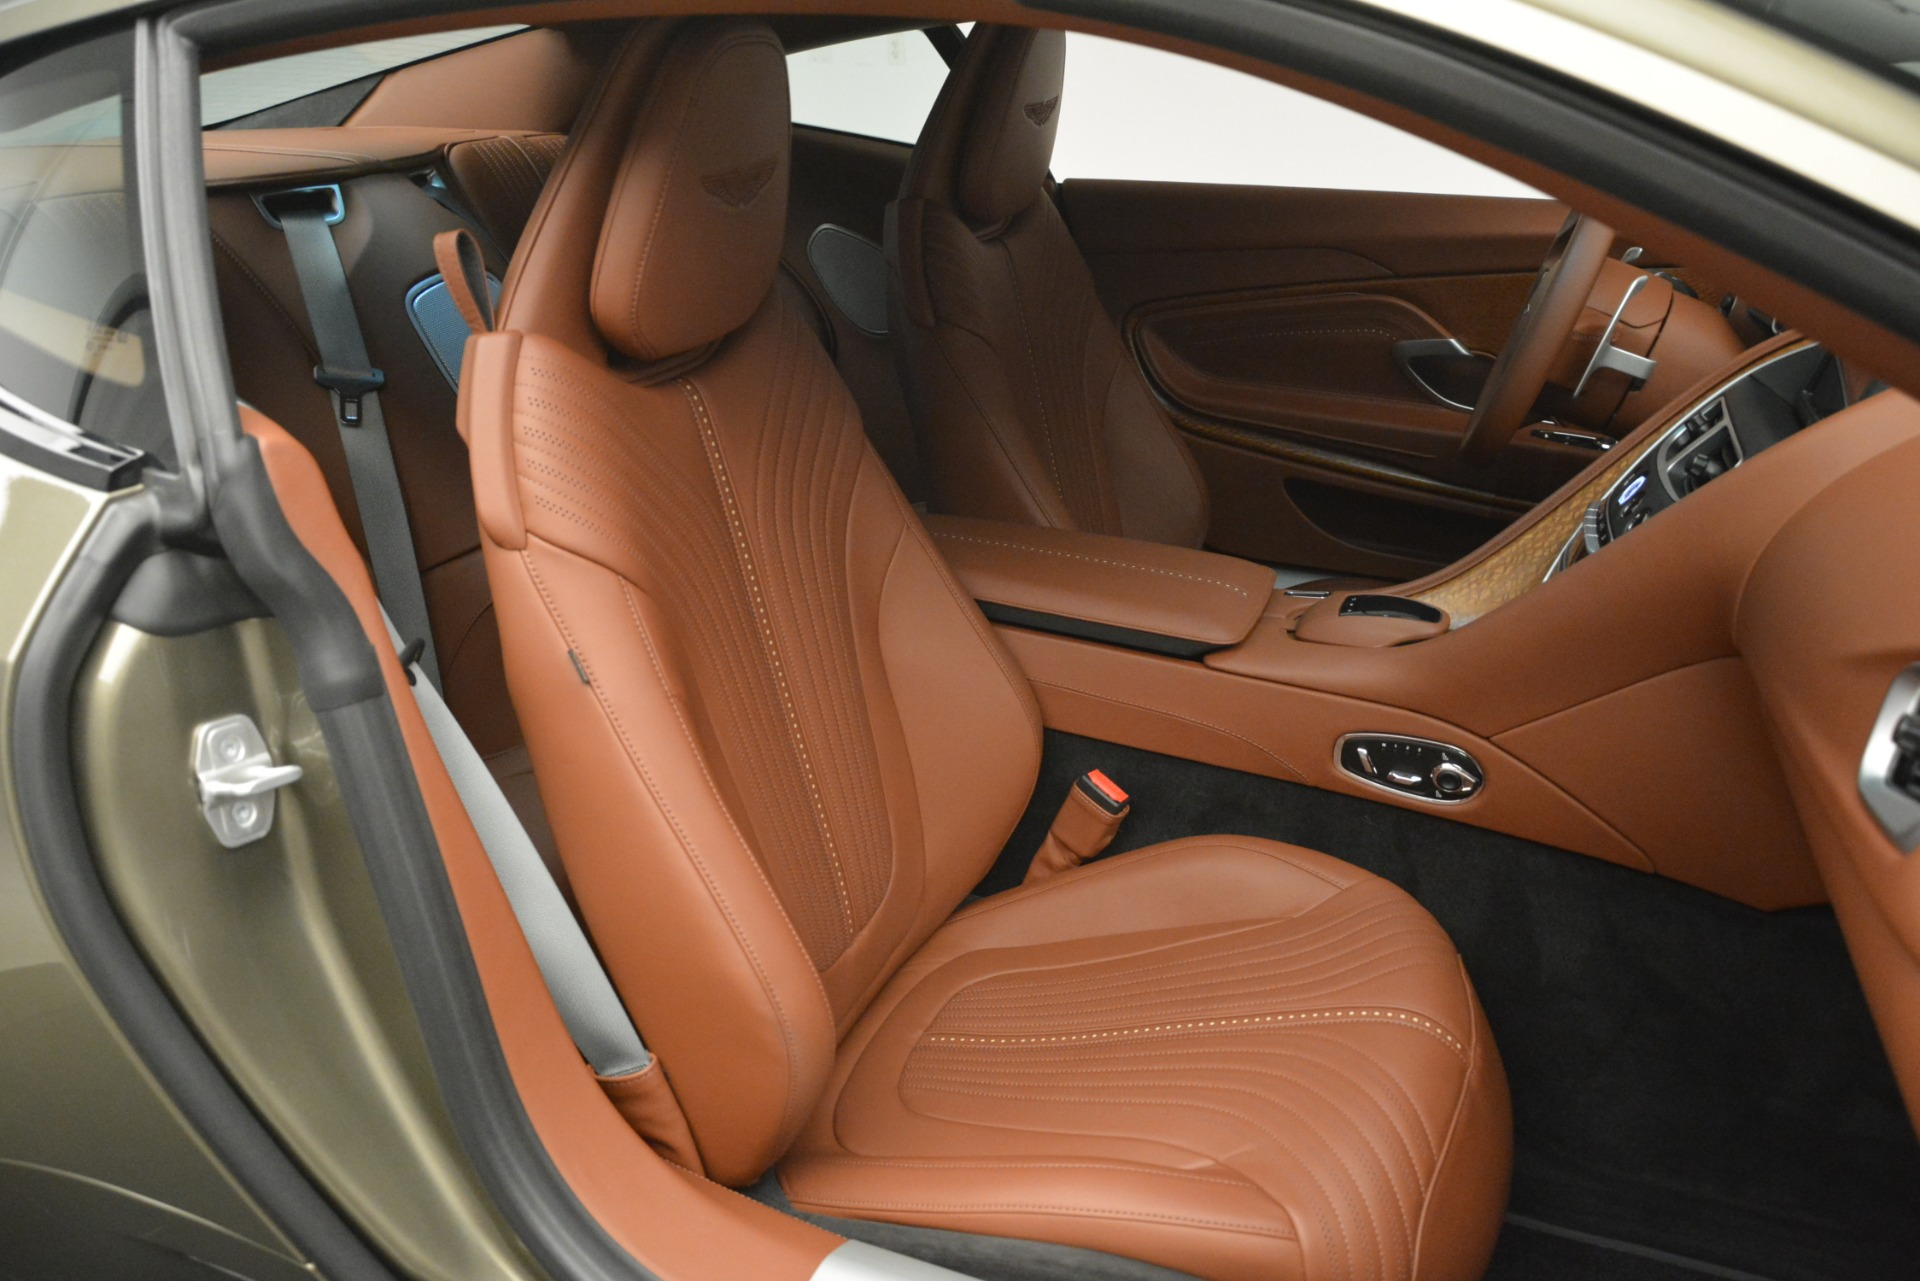 Used 2018 Aston Martin DB11 V12 Coupe For Sale In Westport, CT 2970_p25